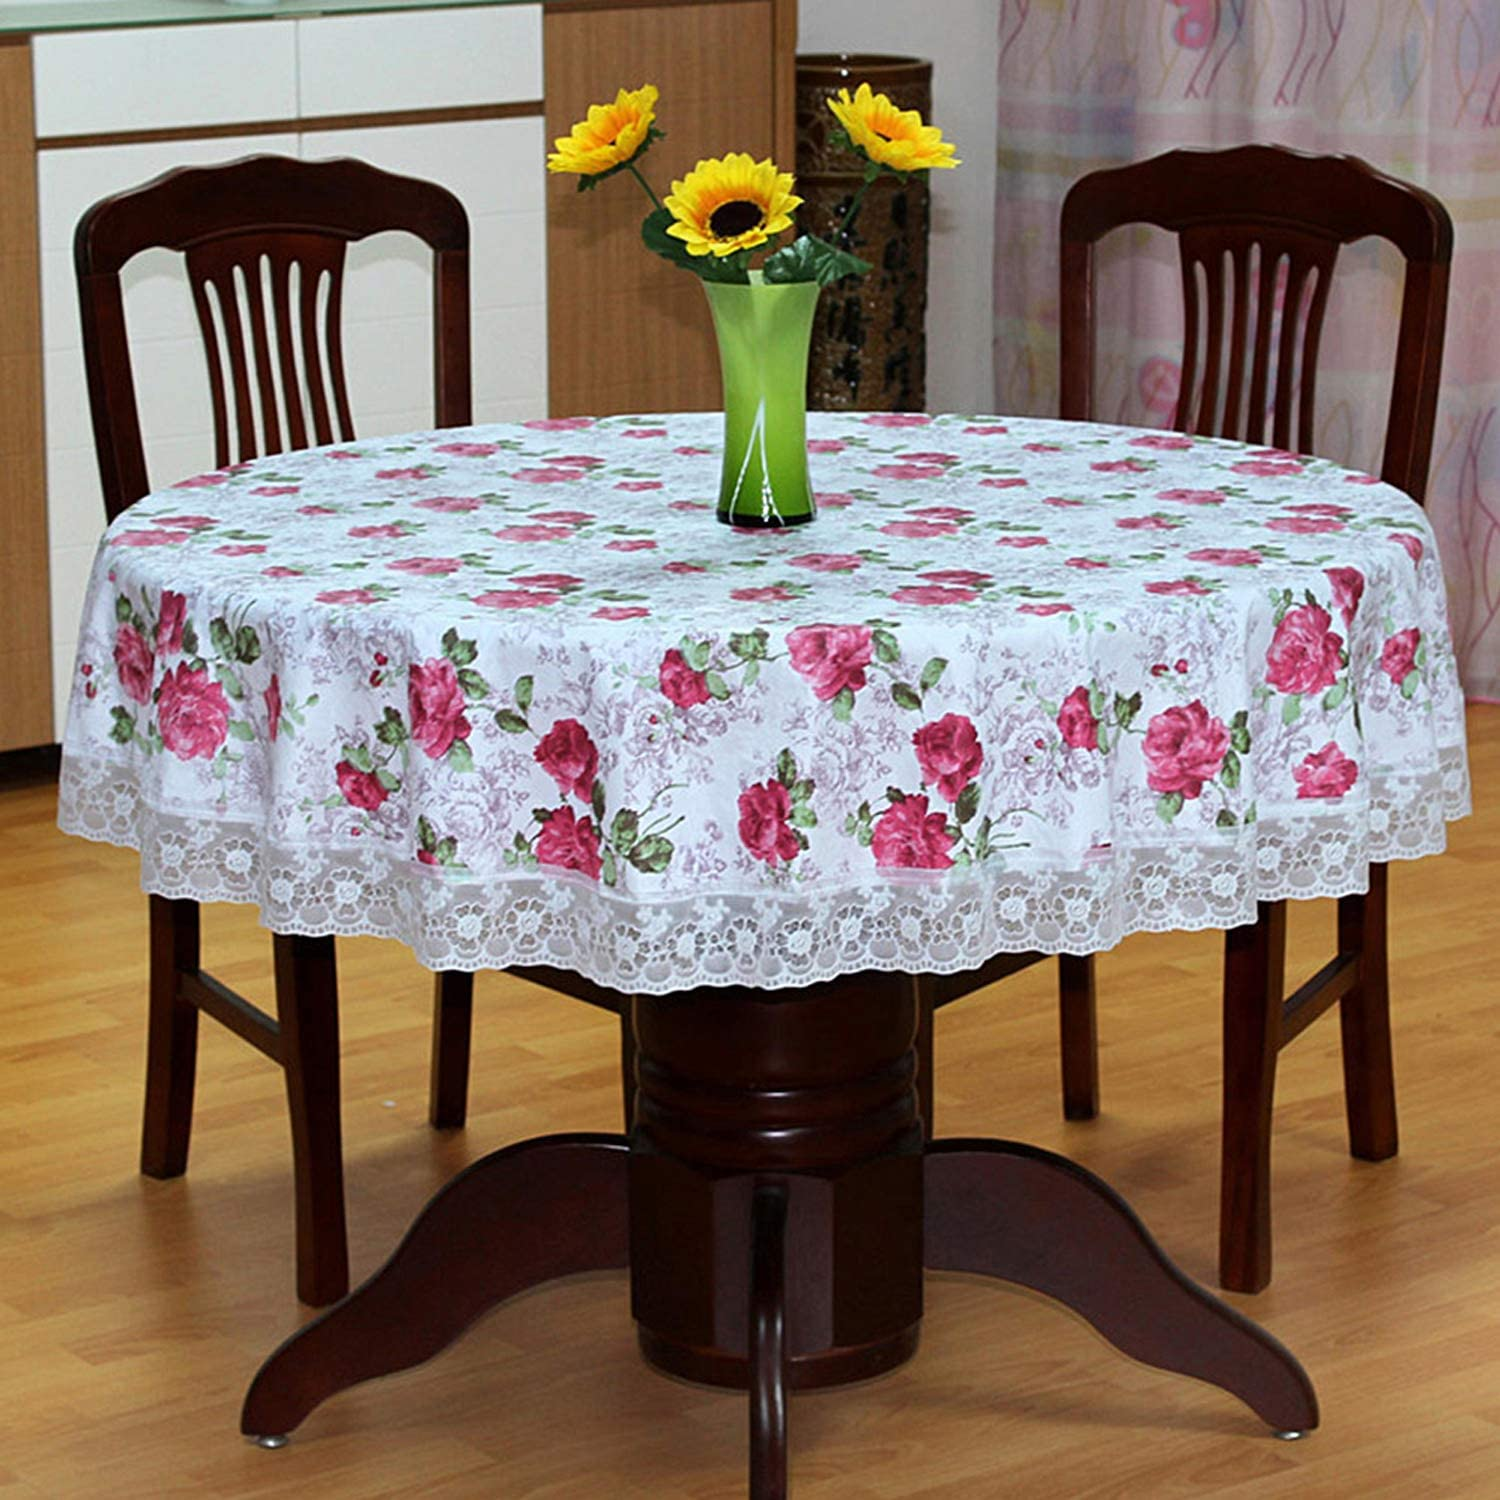 SEPARO Plastic Round Tablecloth Waterproof Rose Flower Pirnt Oilcloth Classic Lace Flannel Backing Tablecloth for Home